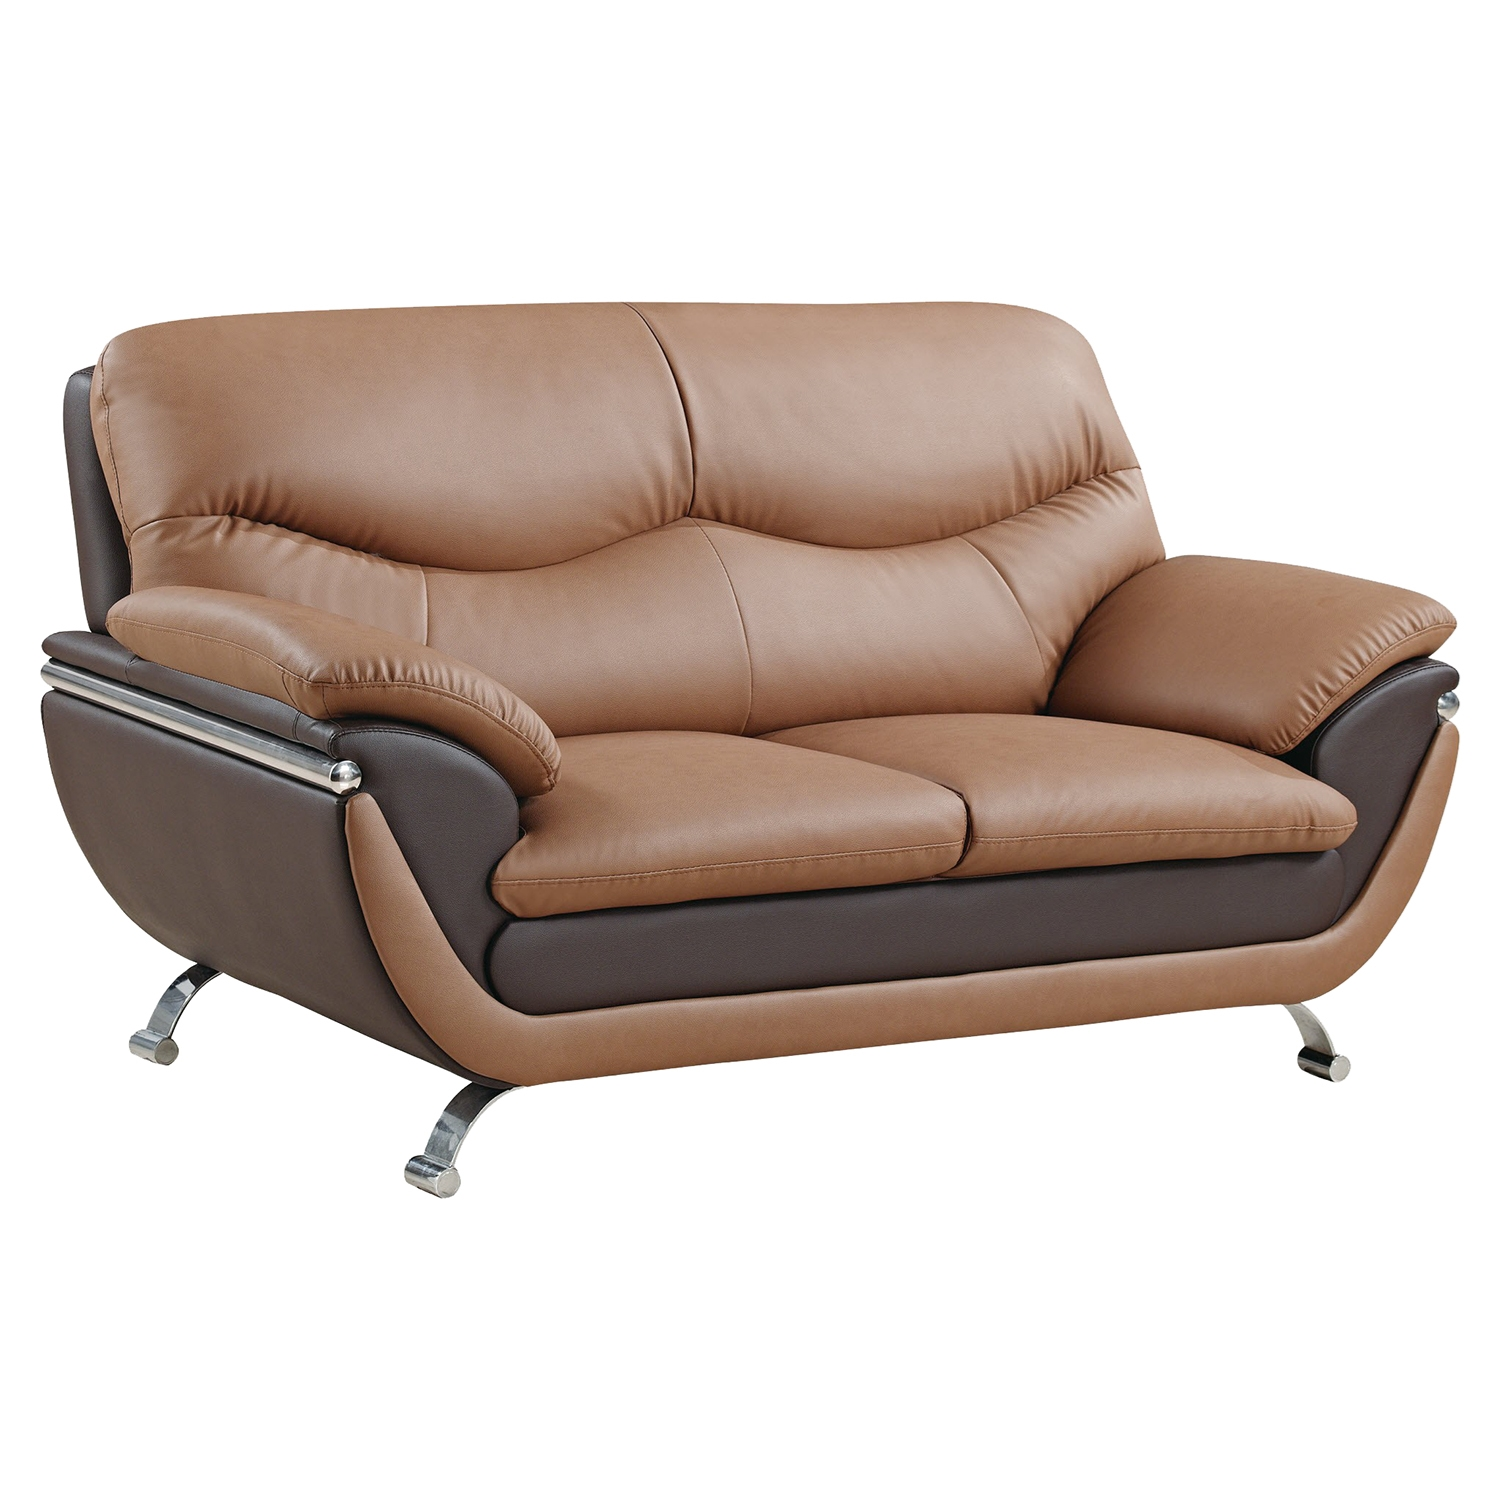 Loveseat - Light Brown and Dark Brown Leather, Chrome Legs - GLO-U2106-RV-L